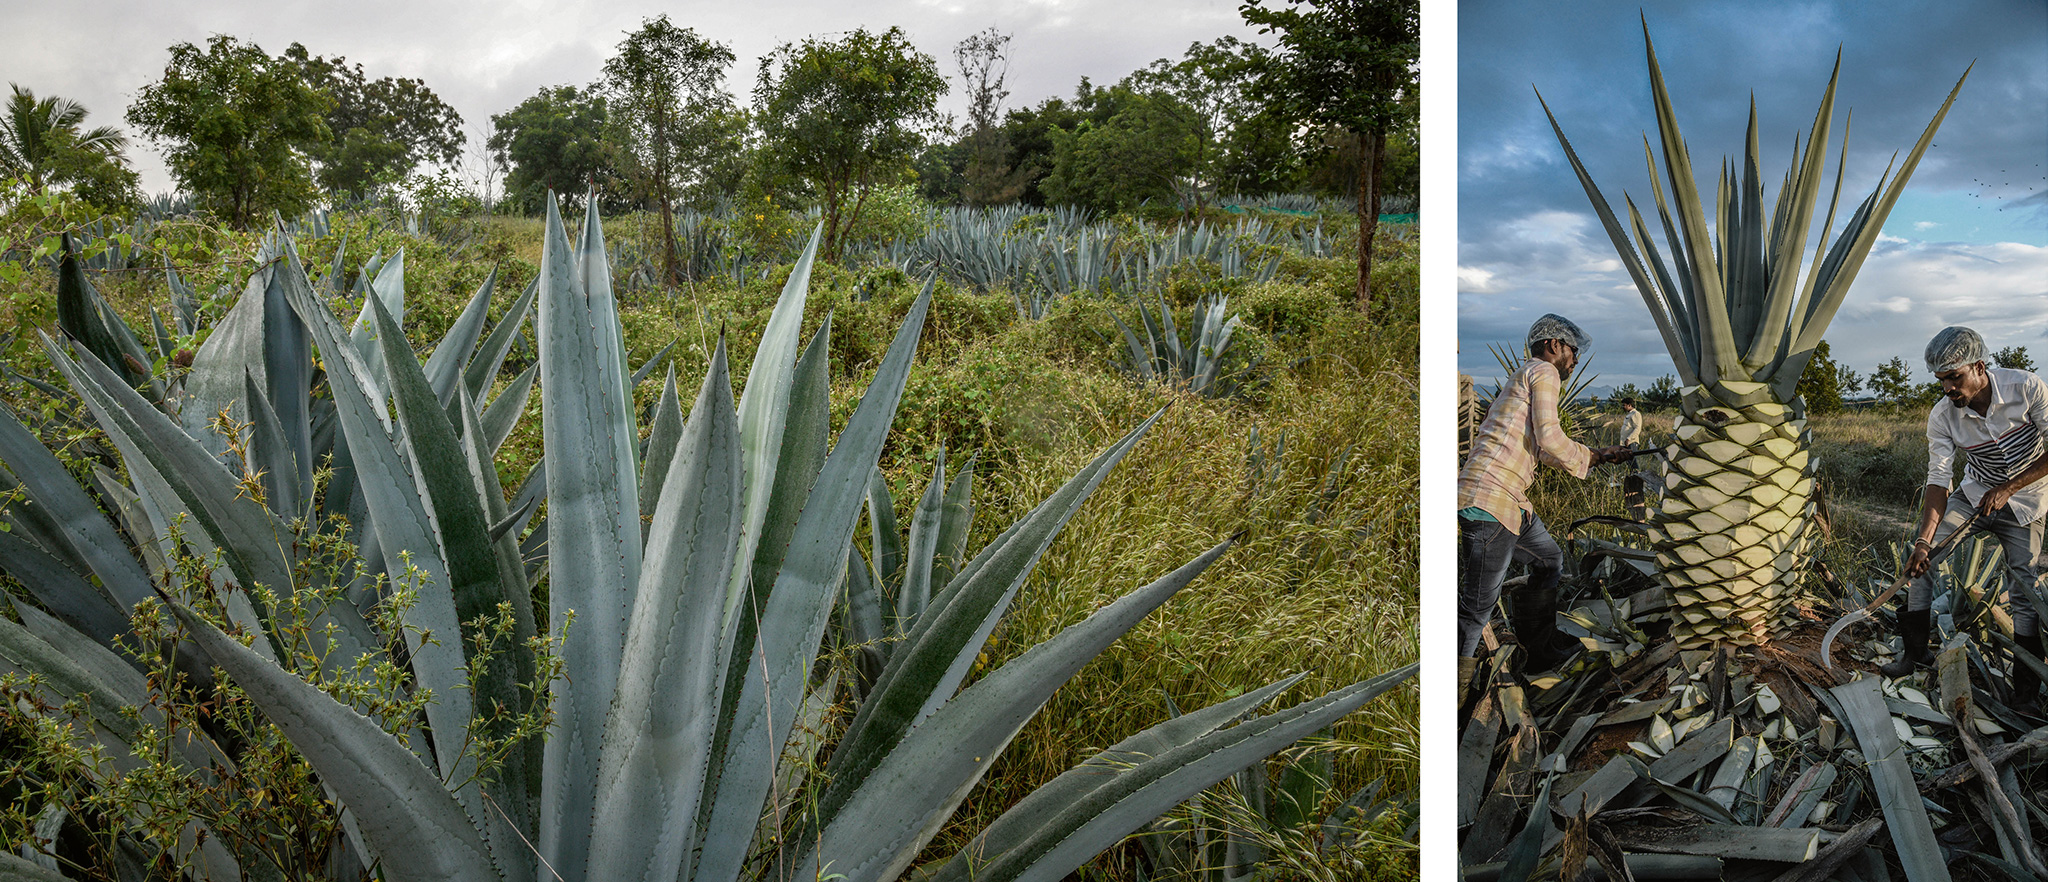 economist.com - Indian tequila: one man's quest to perfect a national spirit